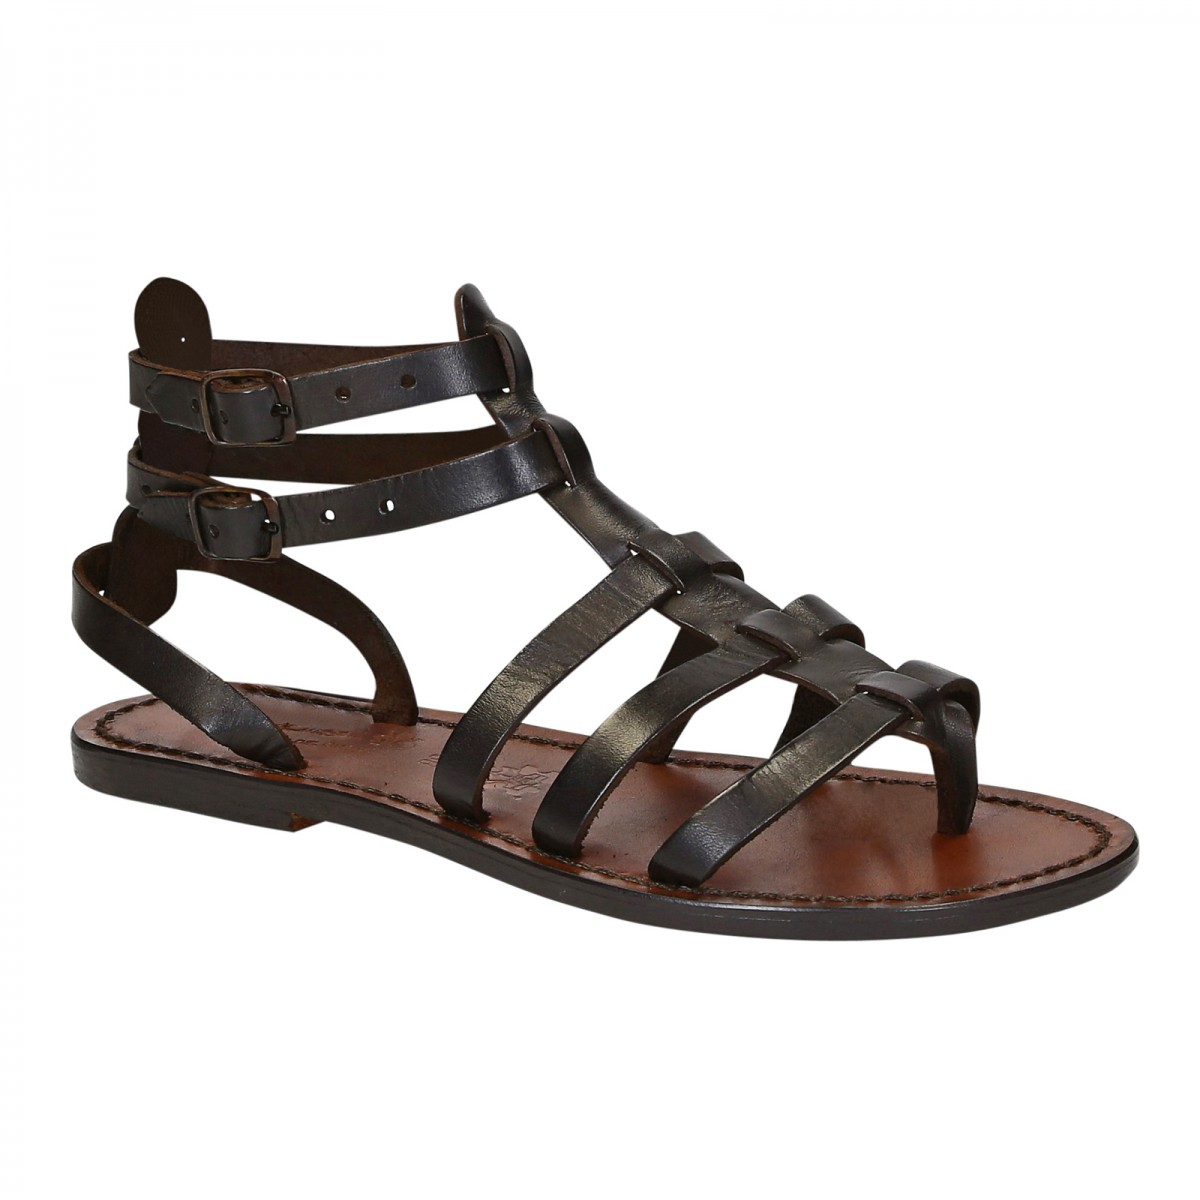 958773773e20 Dark brown gladiator sandals for women real leather Handmade in Italy.  Loading zoom